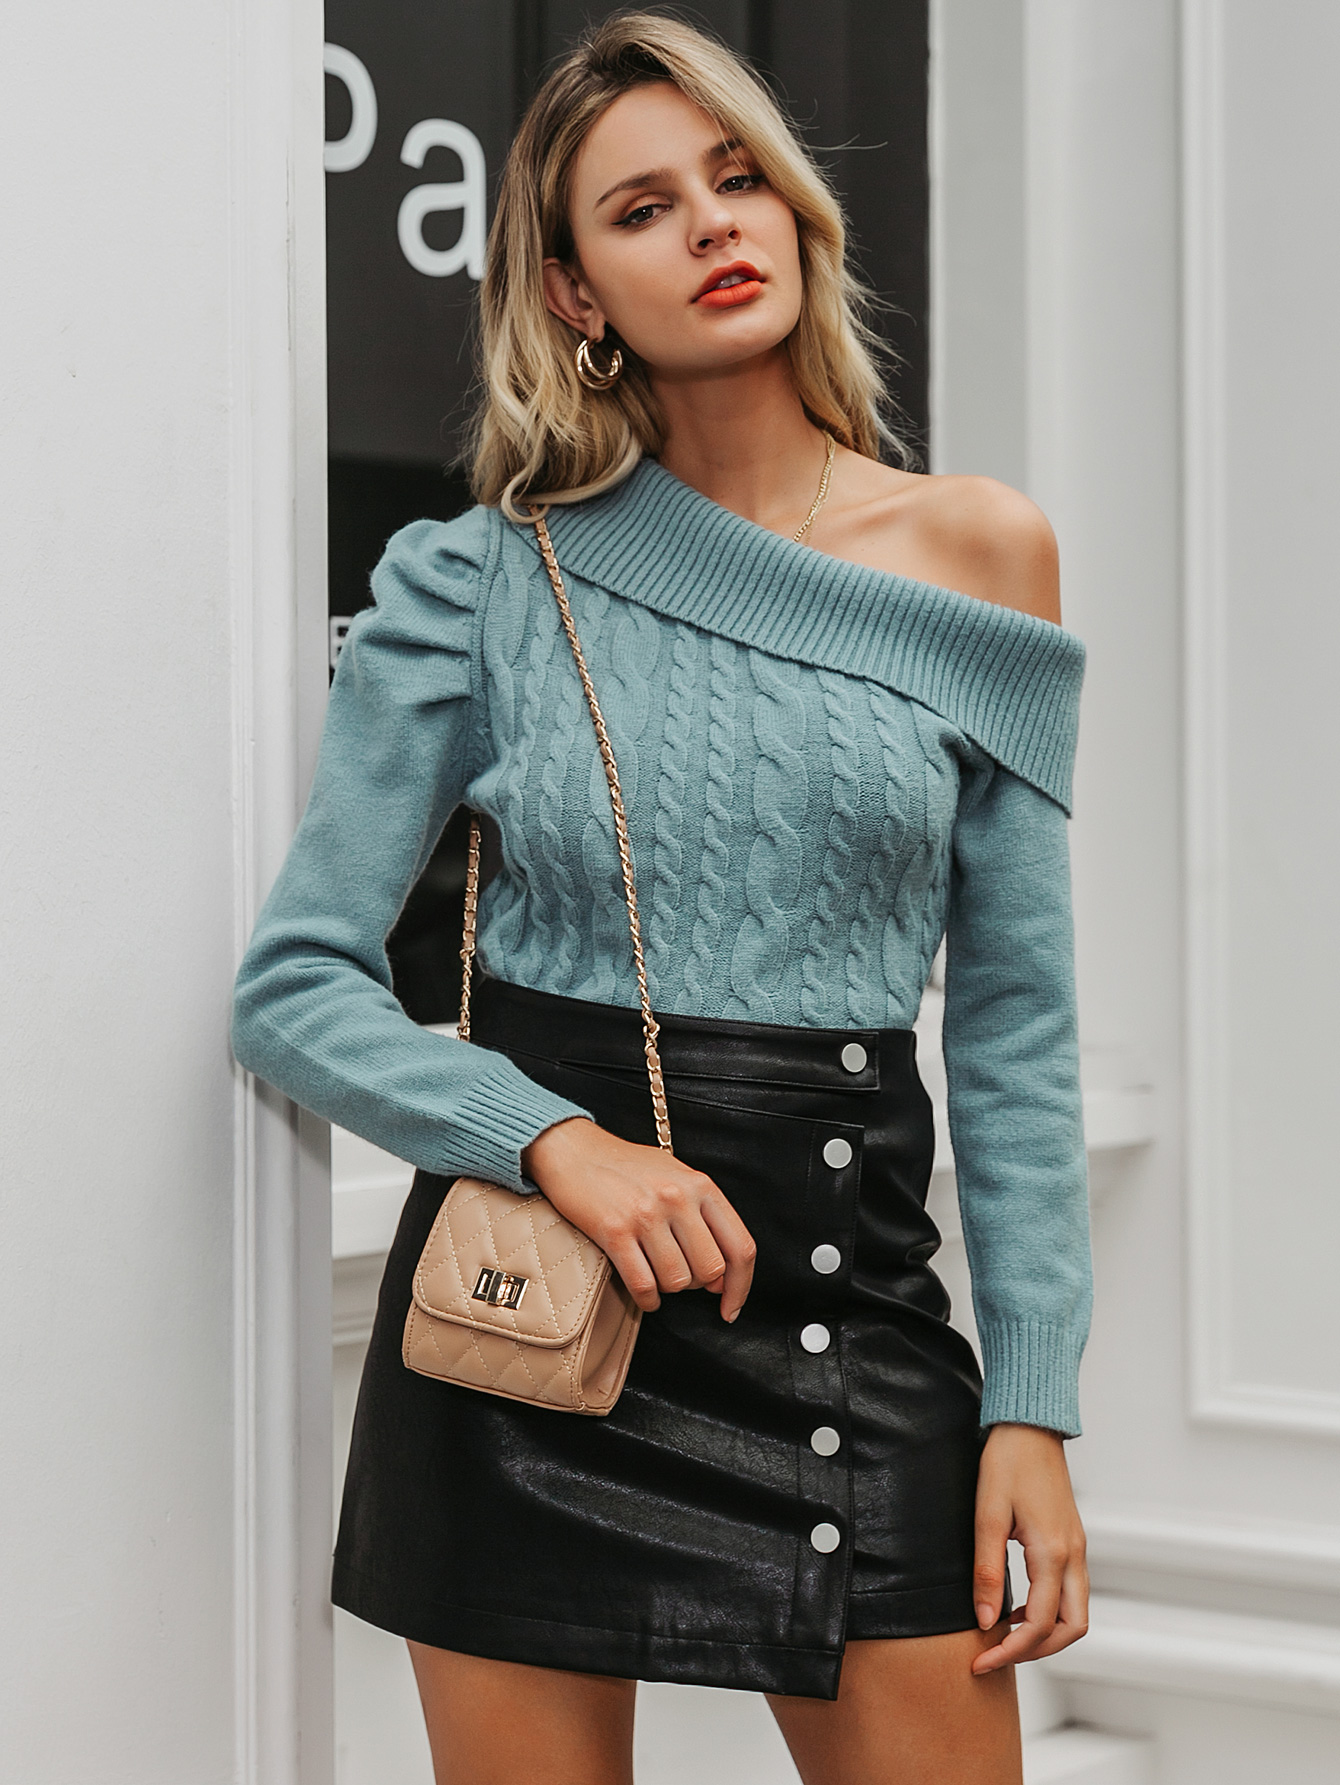 2019 new sexy strapless sweater fashion women's wholesale NHDE190230